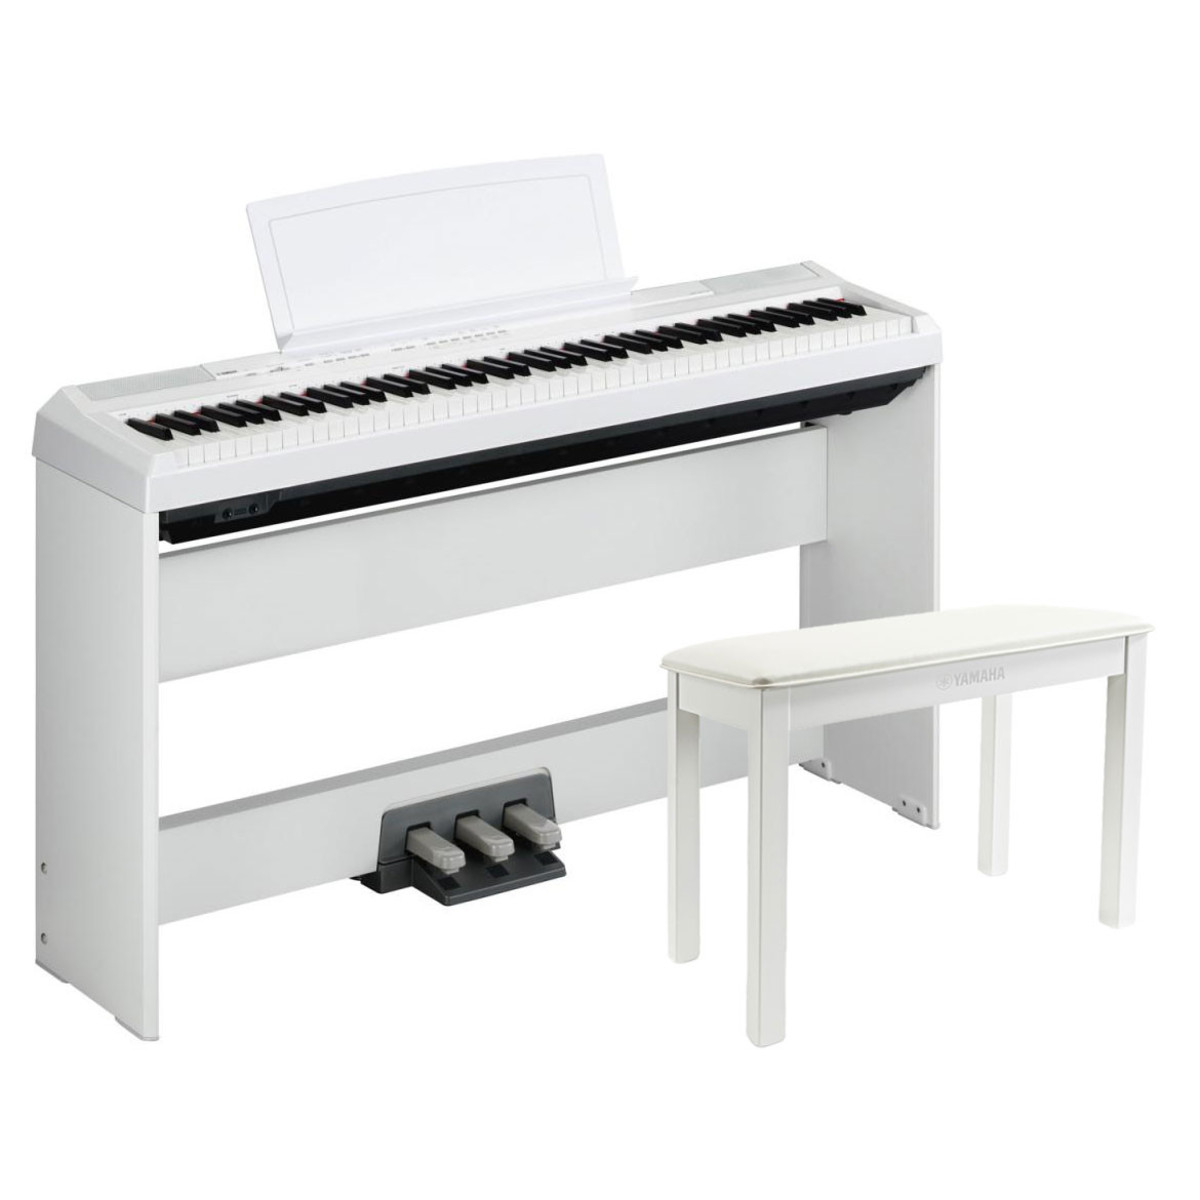 Yamaha P105 Digital Piano, White With Stand, Pedal Board And Bench. Loading  Zoom